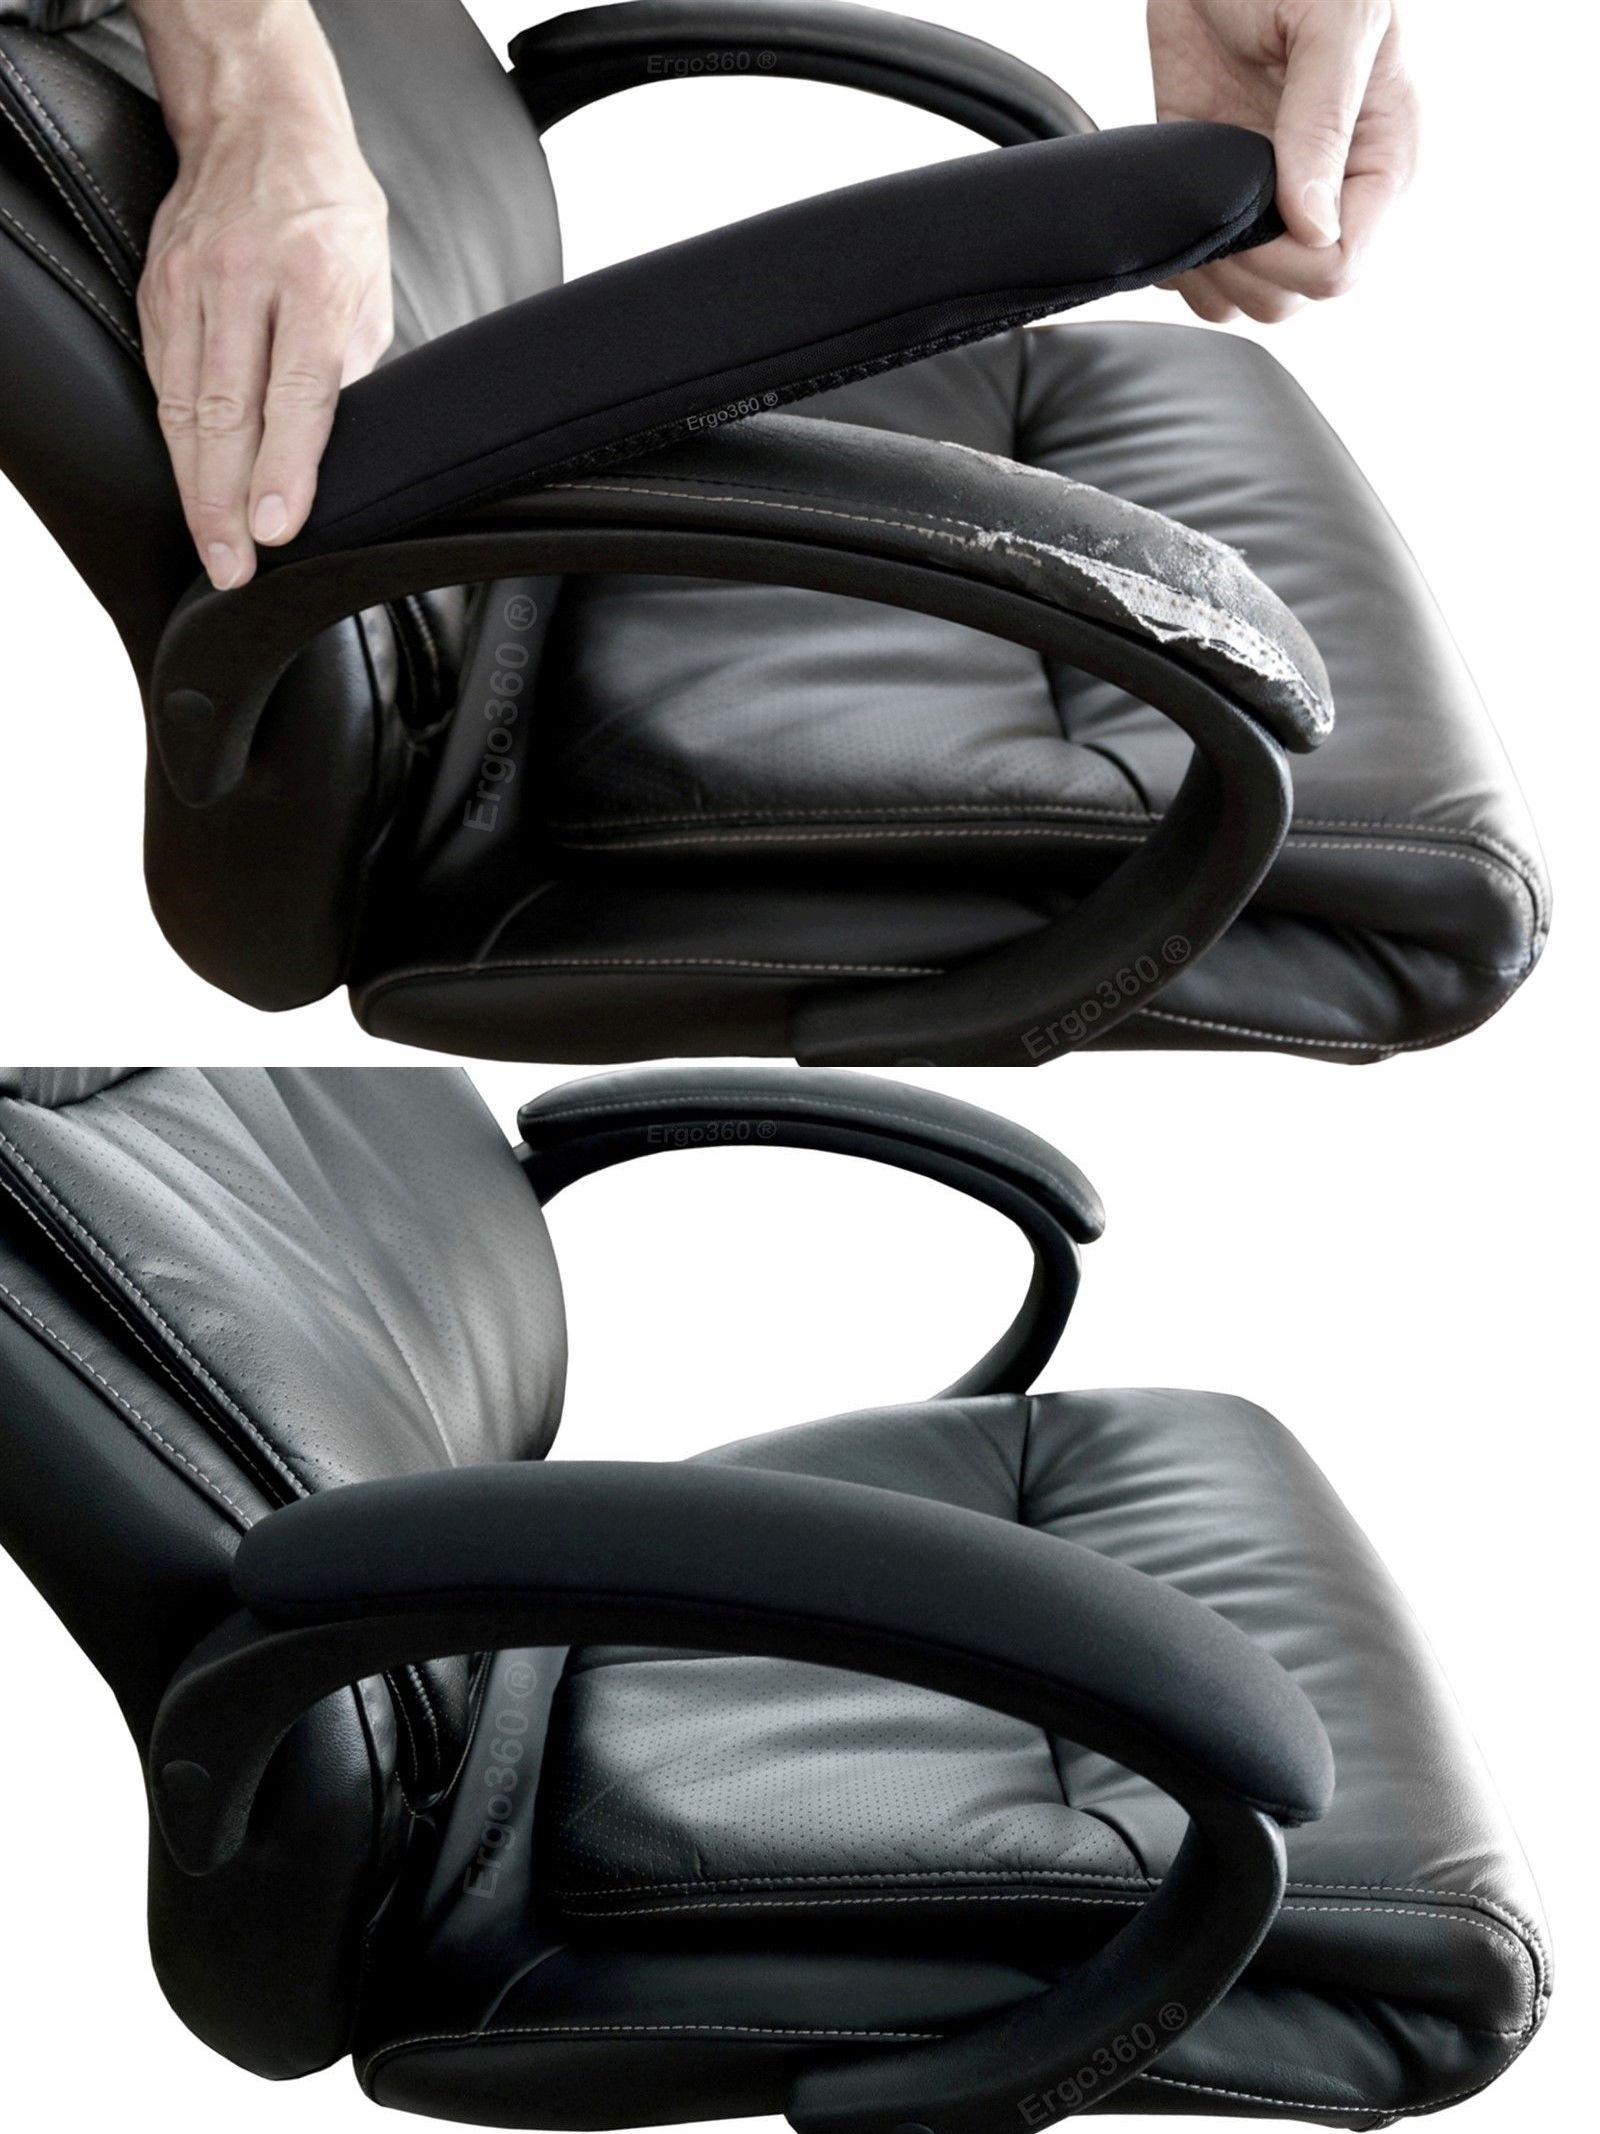 Details About Chair Armrest Covers Fit Armrest Pads From 13 To 17